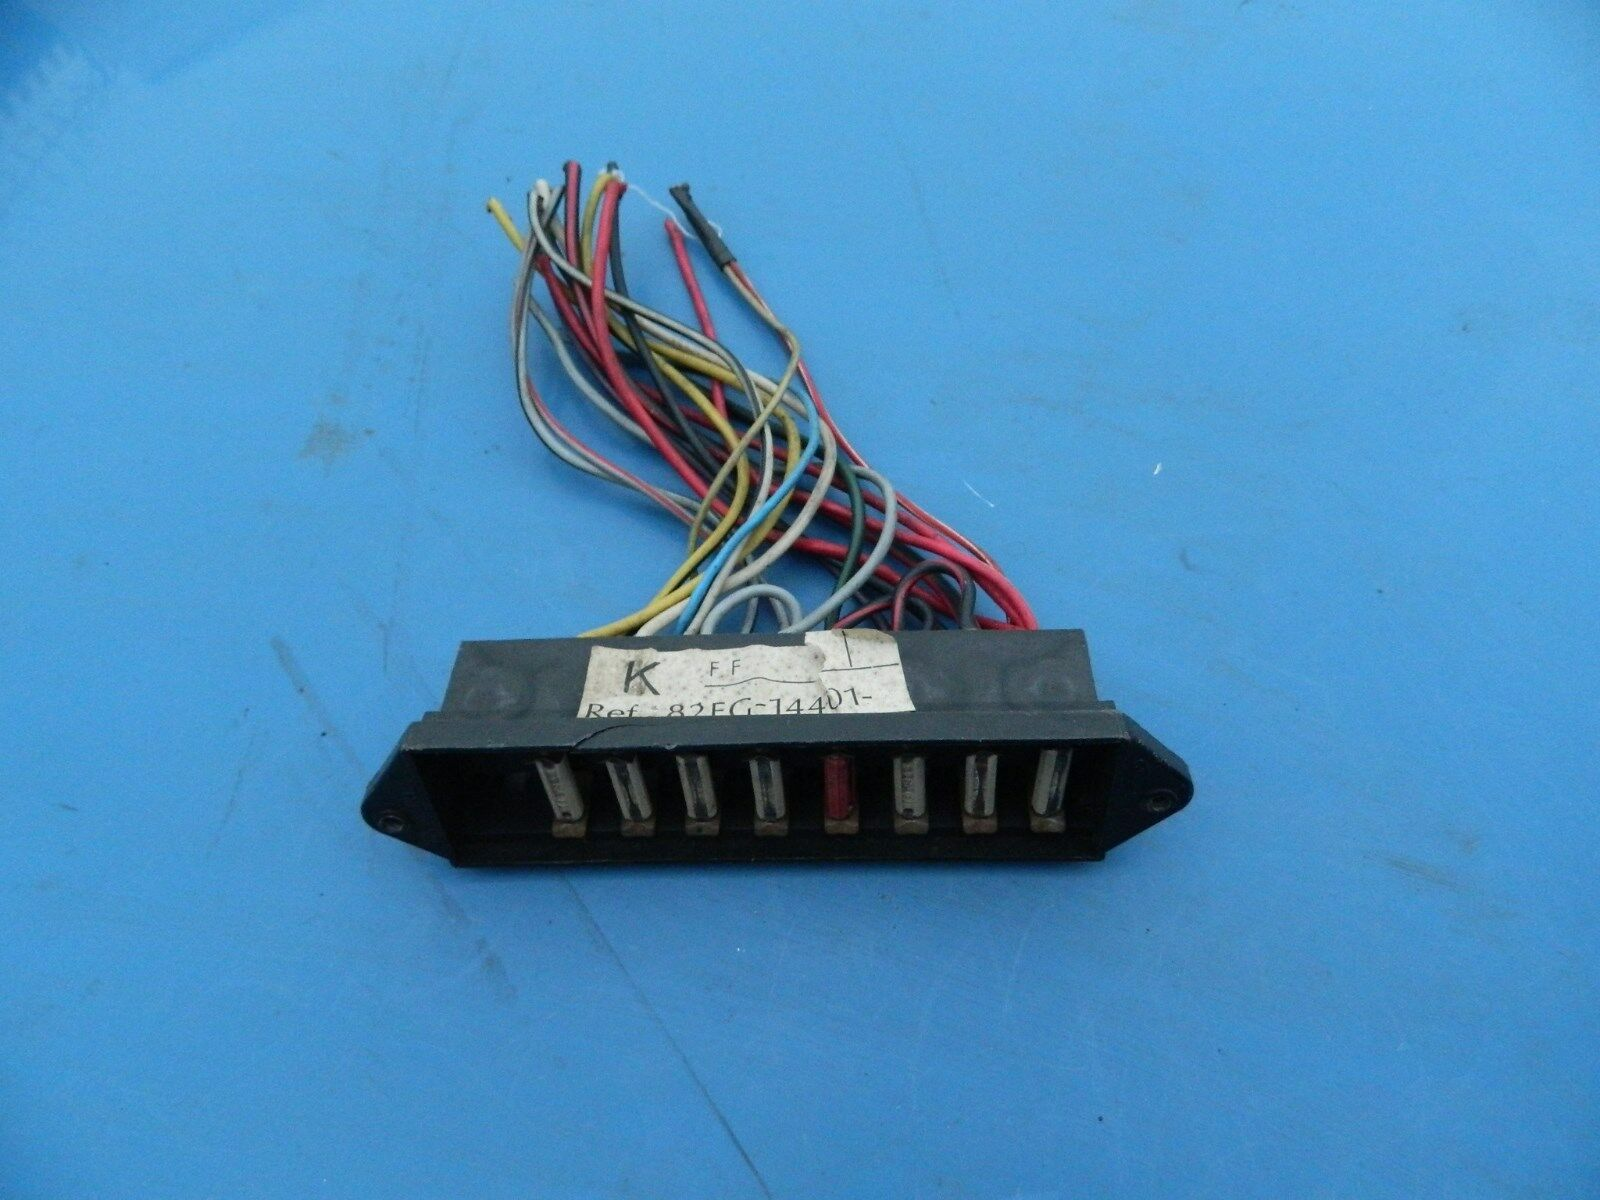 Ford Fiesta Mk1 Fuse Box Cut From Car 1 of 3Only 1 available ...